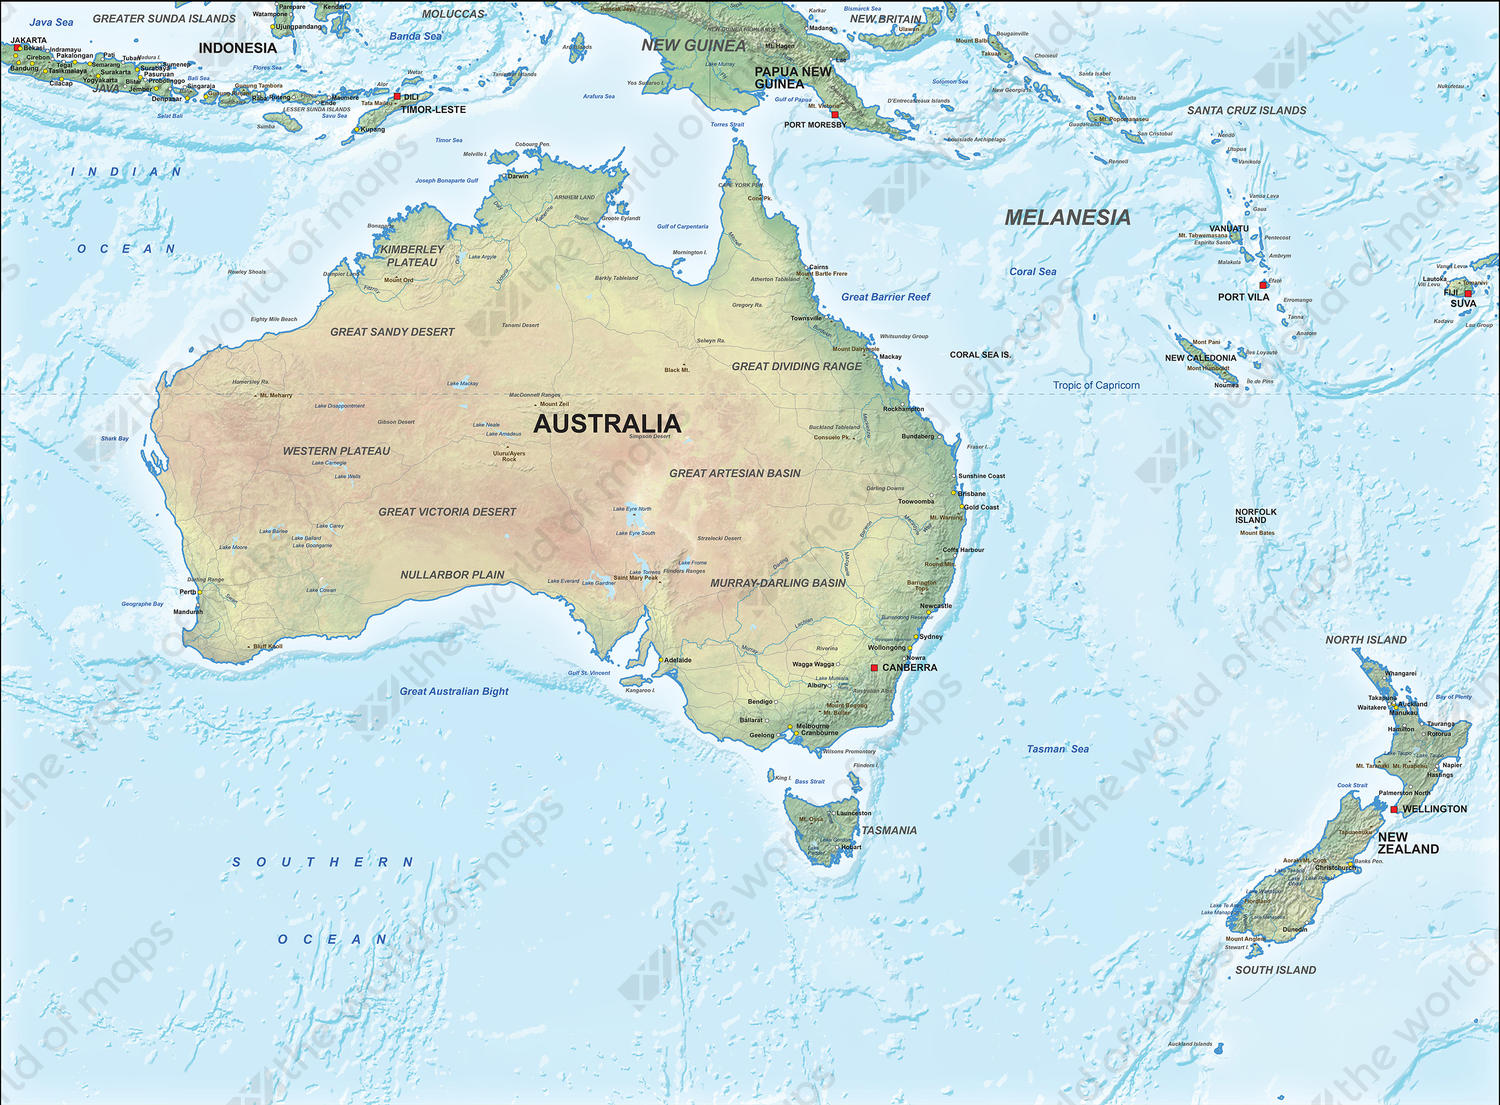 World Map With Australia.Map Australia Digital Physical 1310 The World Of Maps Com